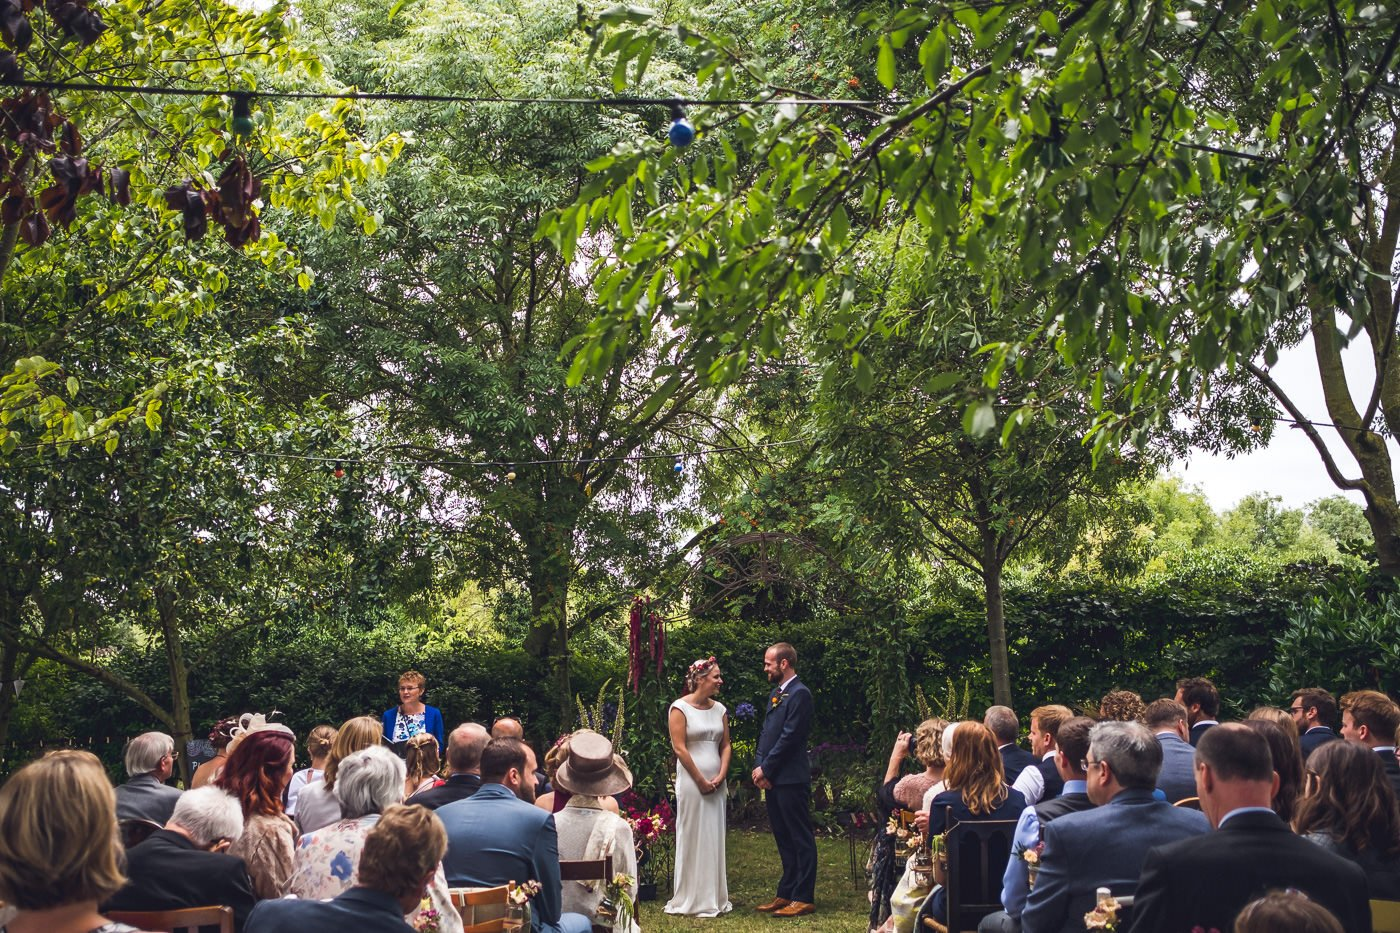 planning advice where to stand during the ceremony